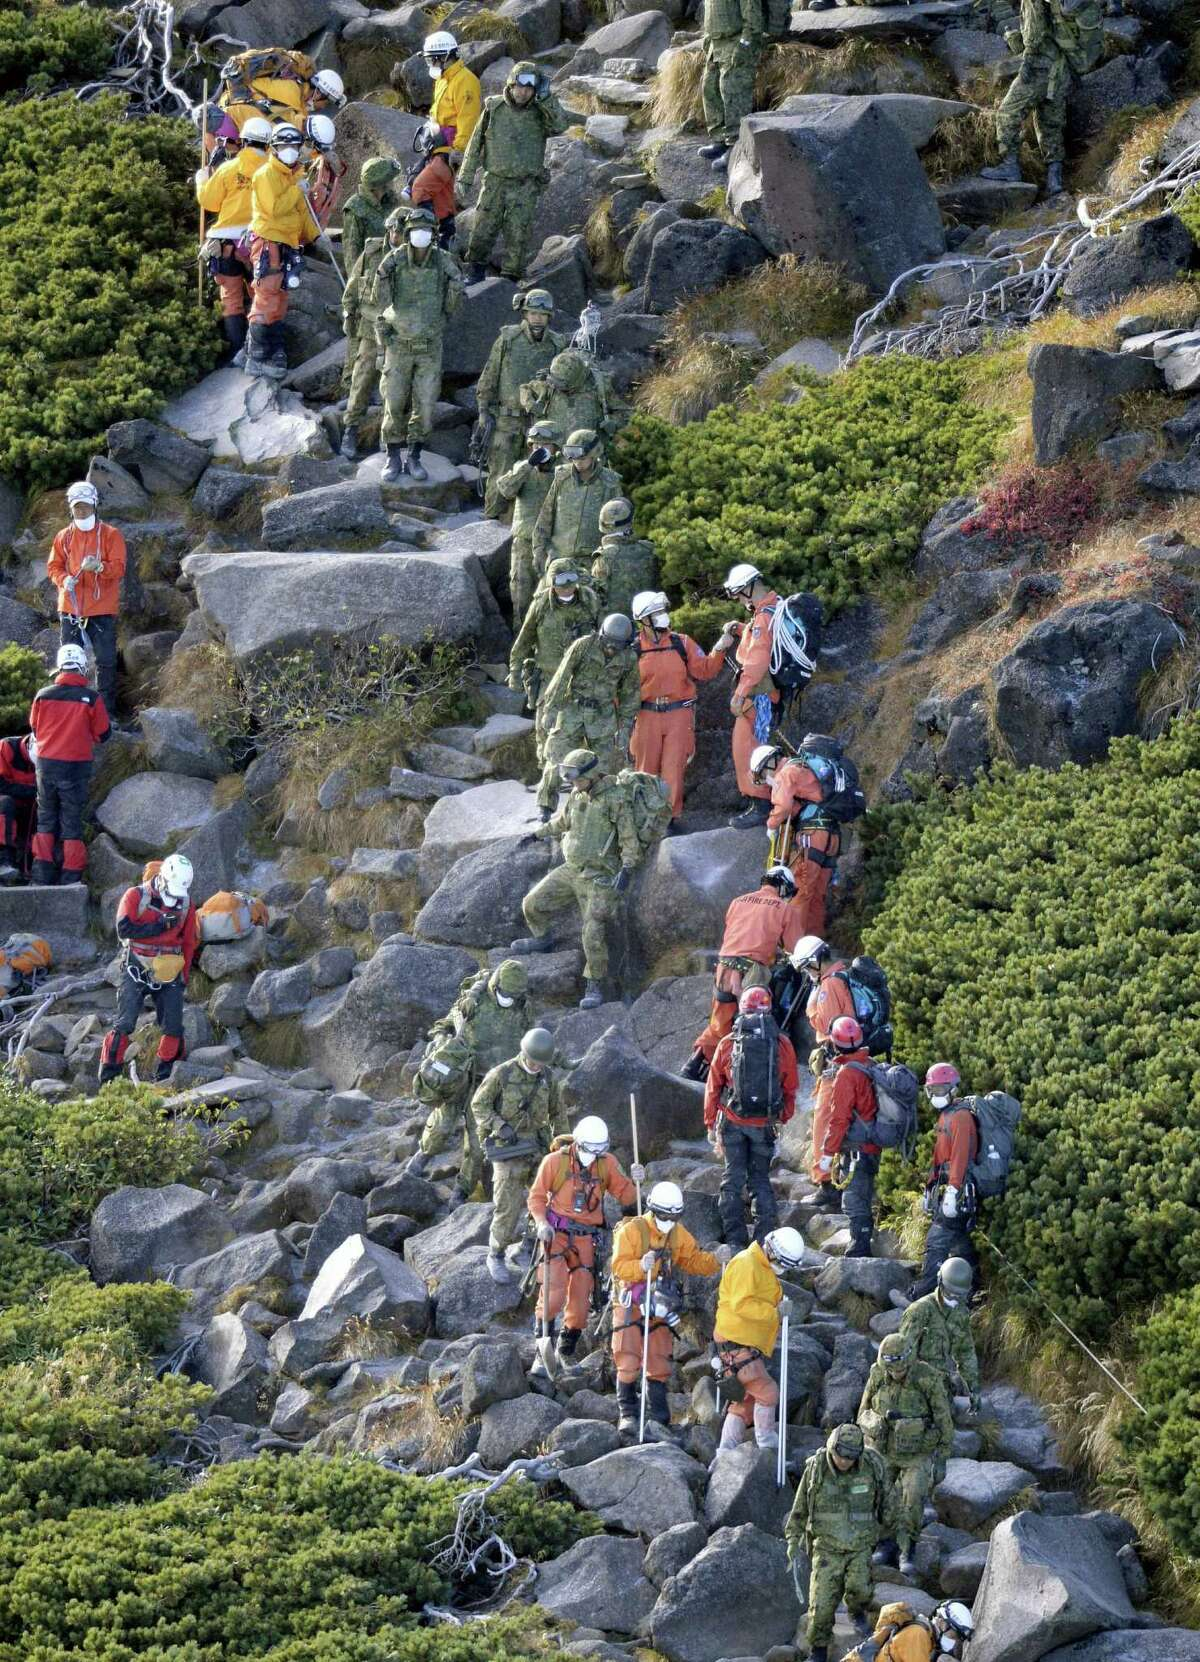 Firefighters and members of the Japan Self-Defense Forces descend Mount Ontake after they called off a search operation due to noxious fume in central Japan, Sunday, Sept. 8, 2014. Mount Ontake erupted shortly before noon Saturday, spewing large white plumes of gas and ash high into the sky and blanketing the surrounding area in ash. Rescue workers have found 30 or more people unconscious and believed to be dead near the peak of an erupting volcano in central Japan, local government and police said. JAPAN OUT, MANDATORY CREDIT